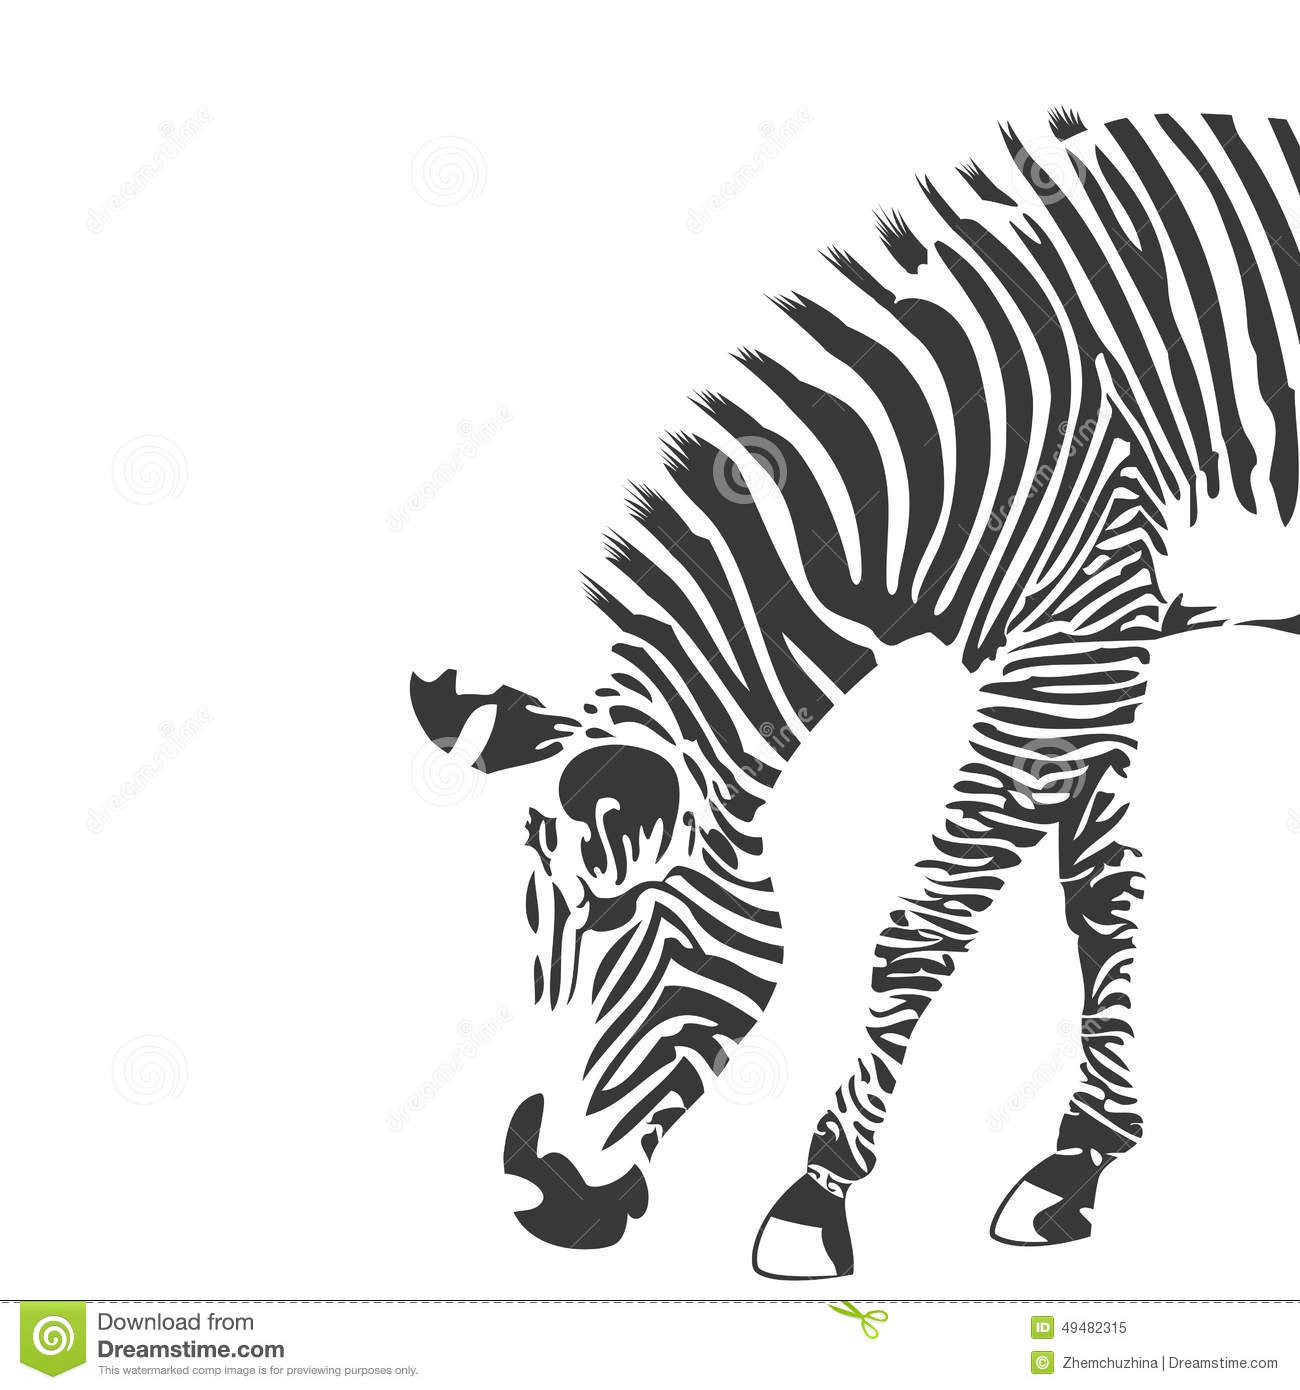 Illustration of zebra in black and white. Background with place for ...